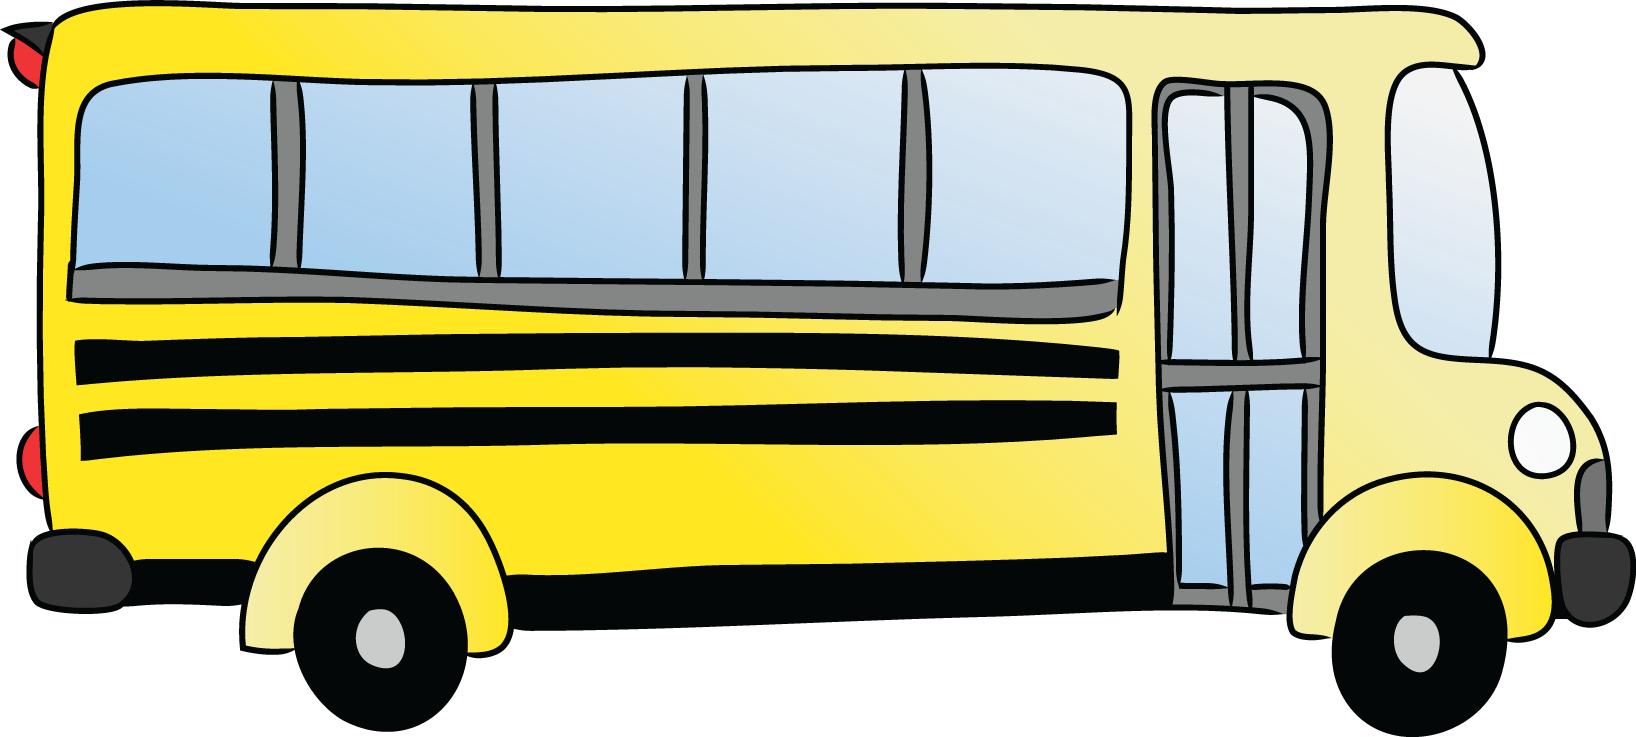 Bus and car clipart clipart freeuse stock School bus Drawing Clip art - Bus Cliparts Transparent 1636*737 ... clipart freeuse stock